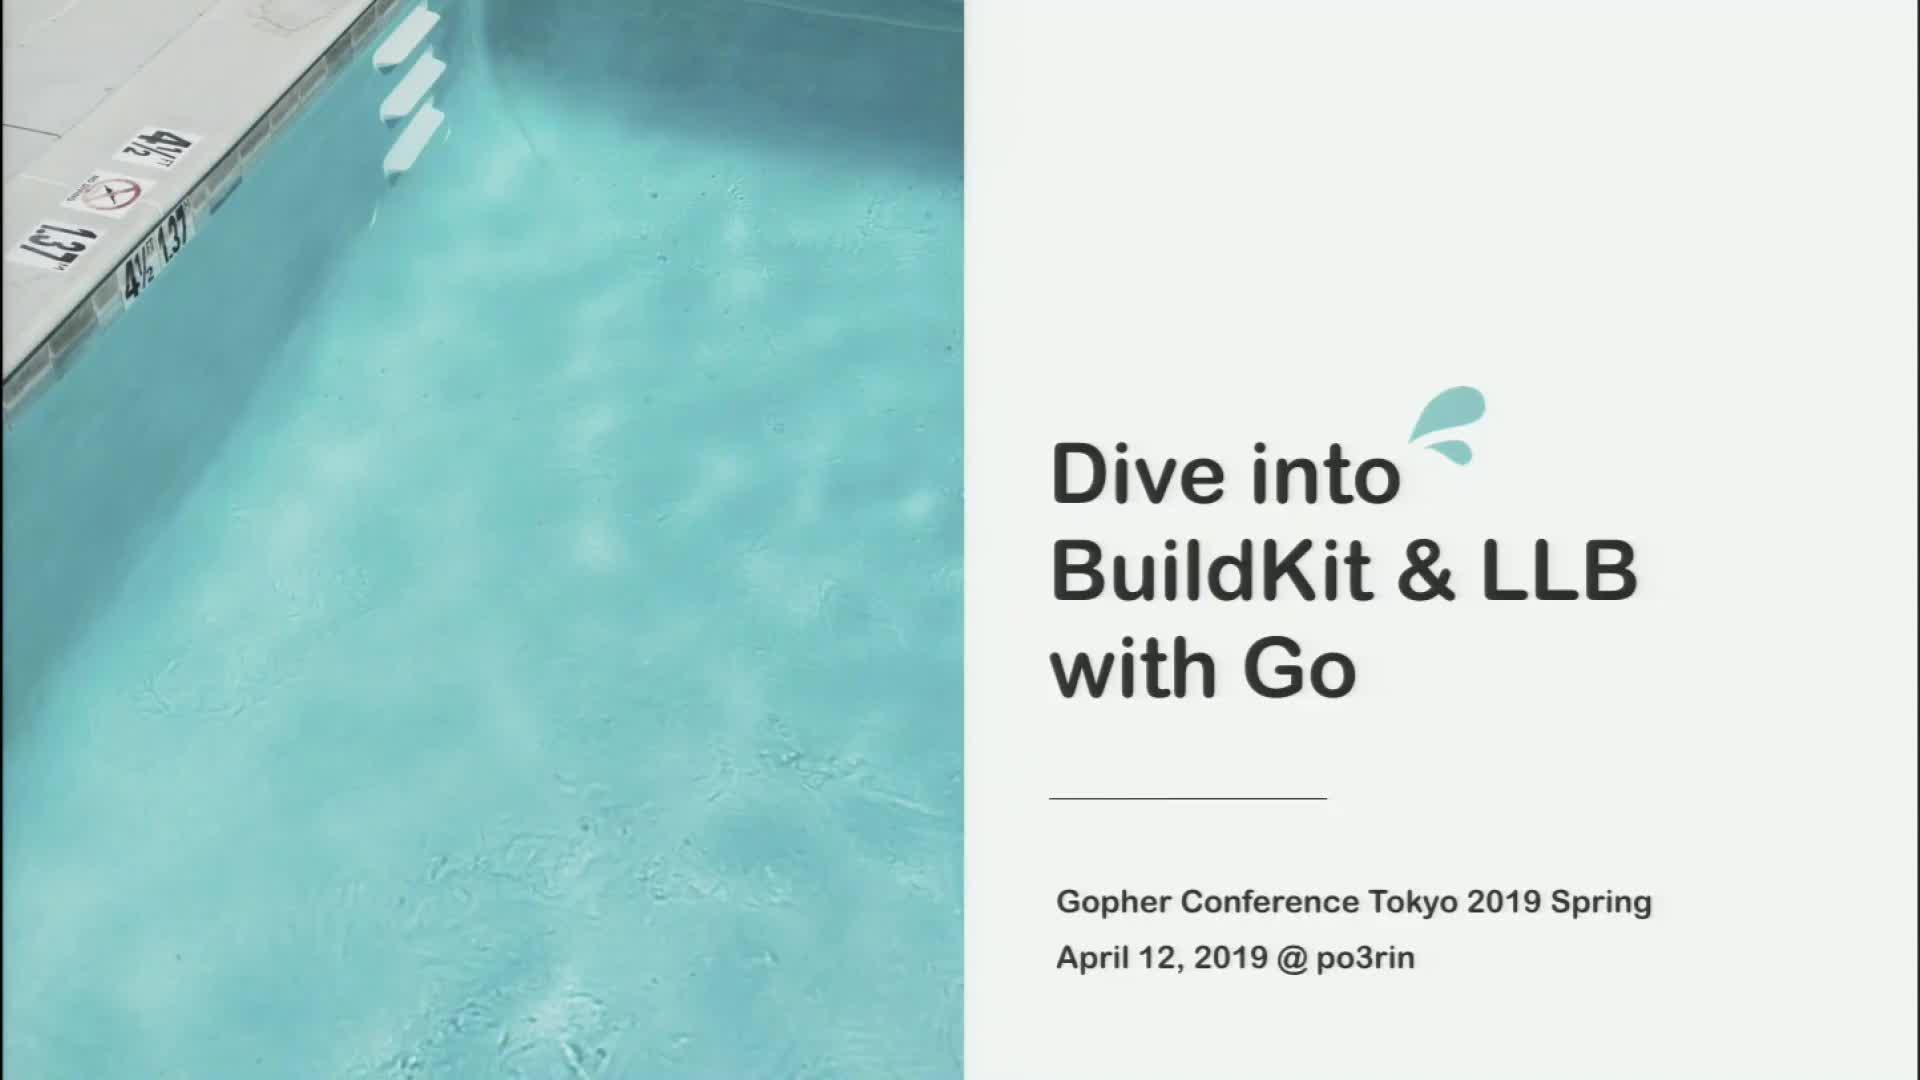 Dive into BuildKit & LLB with Go